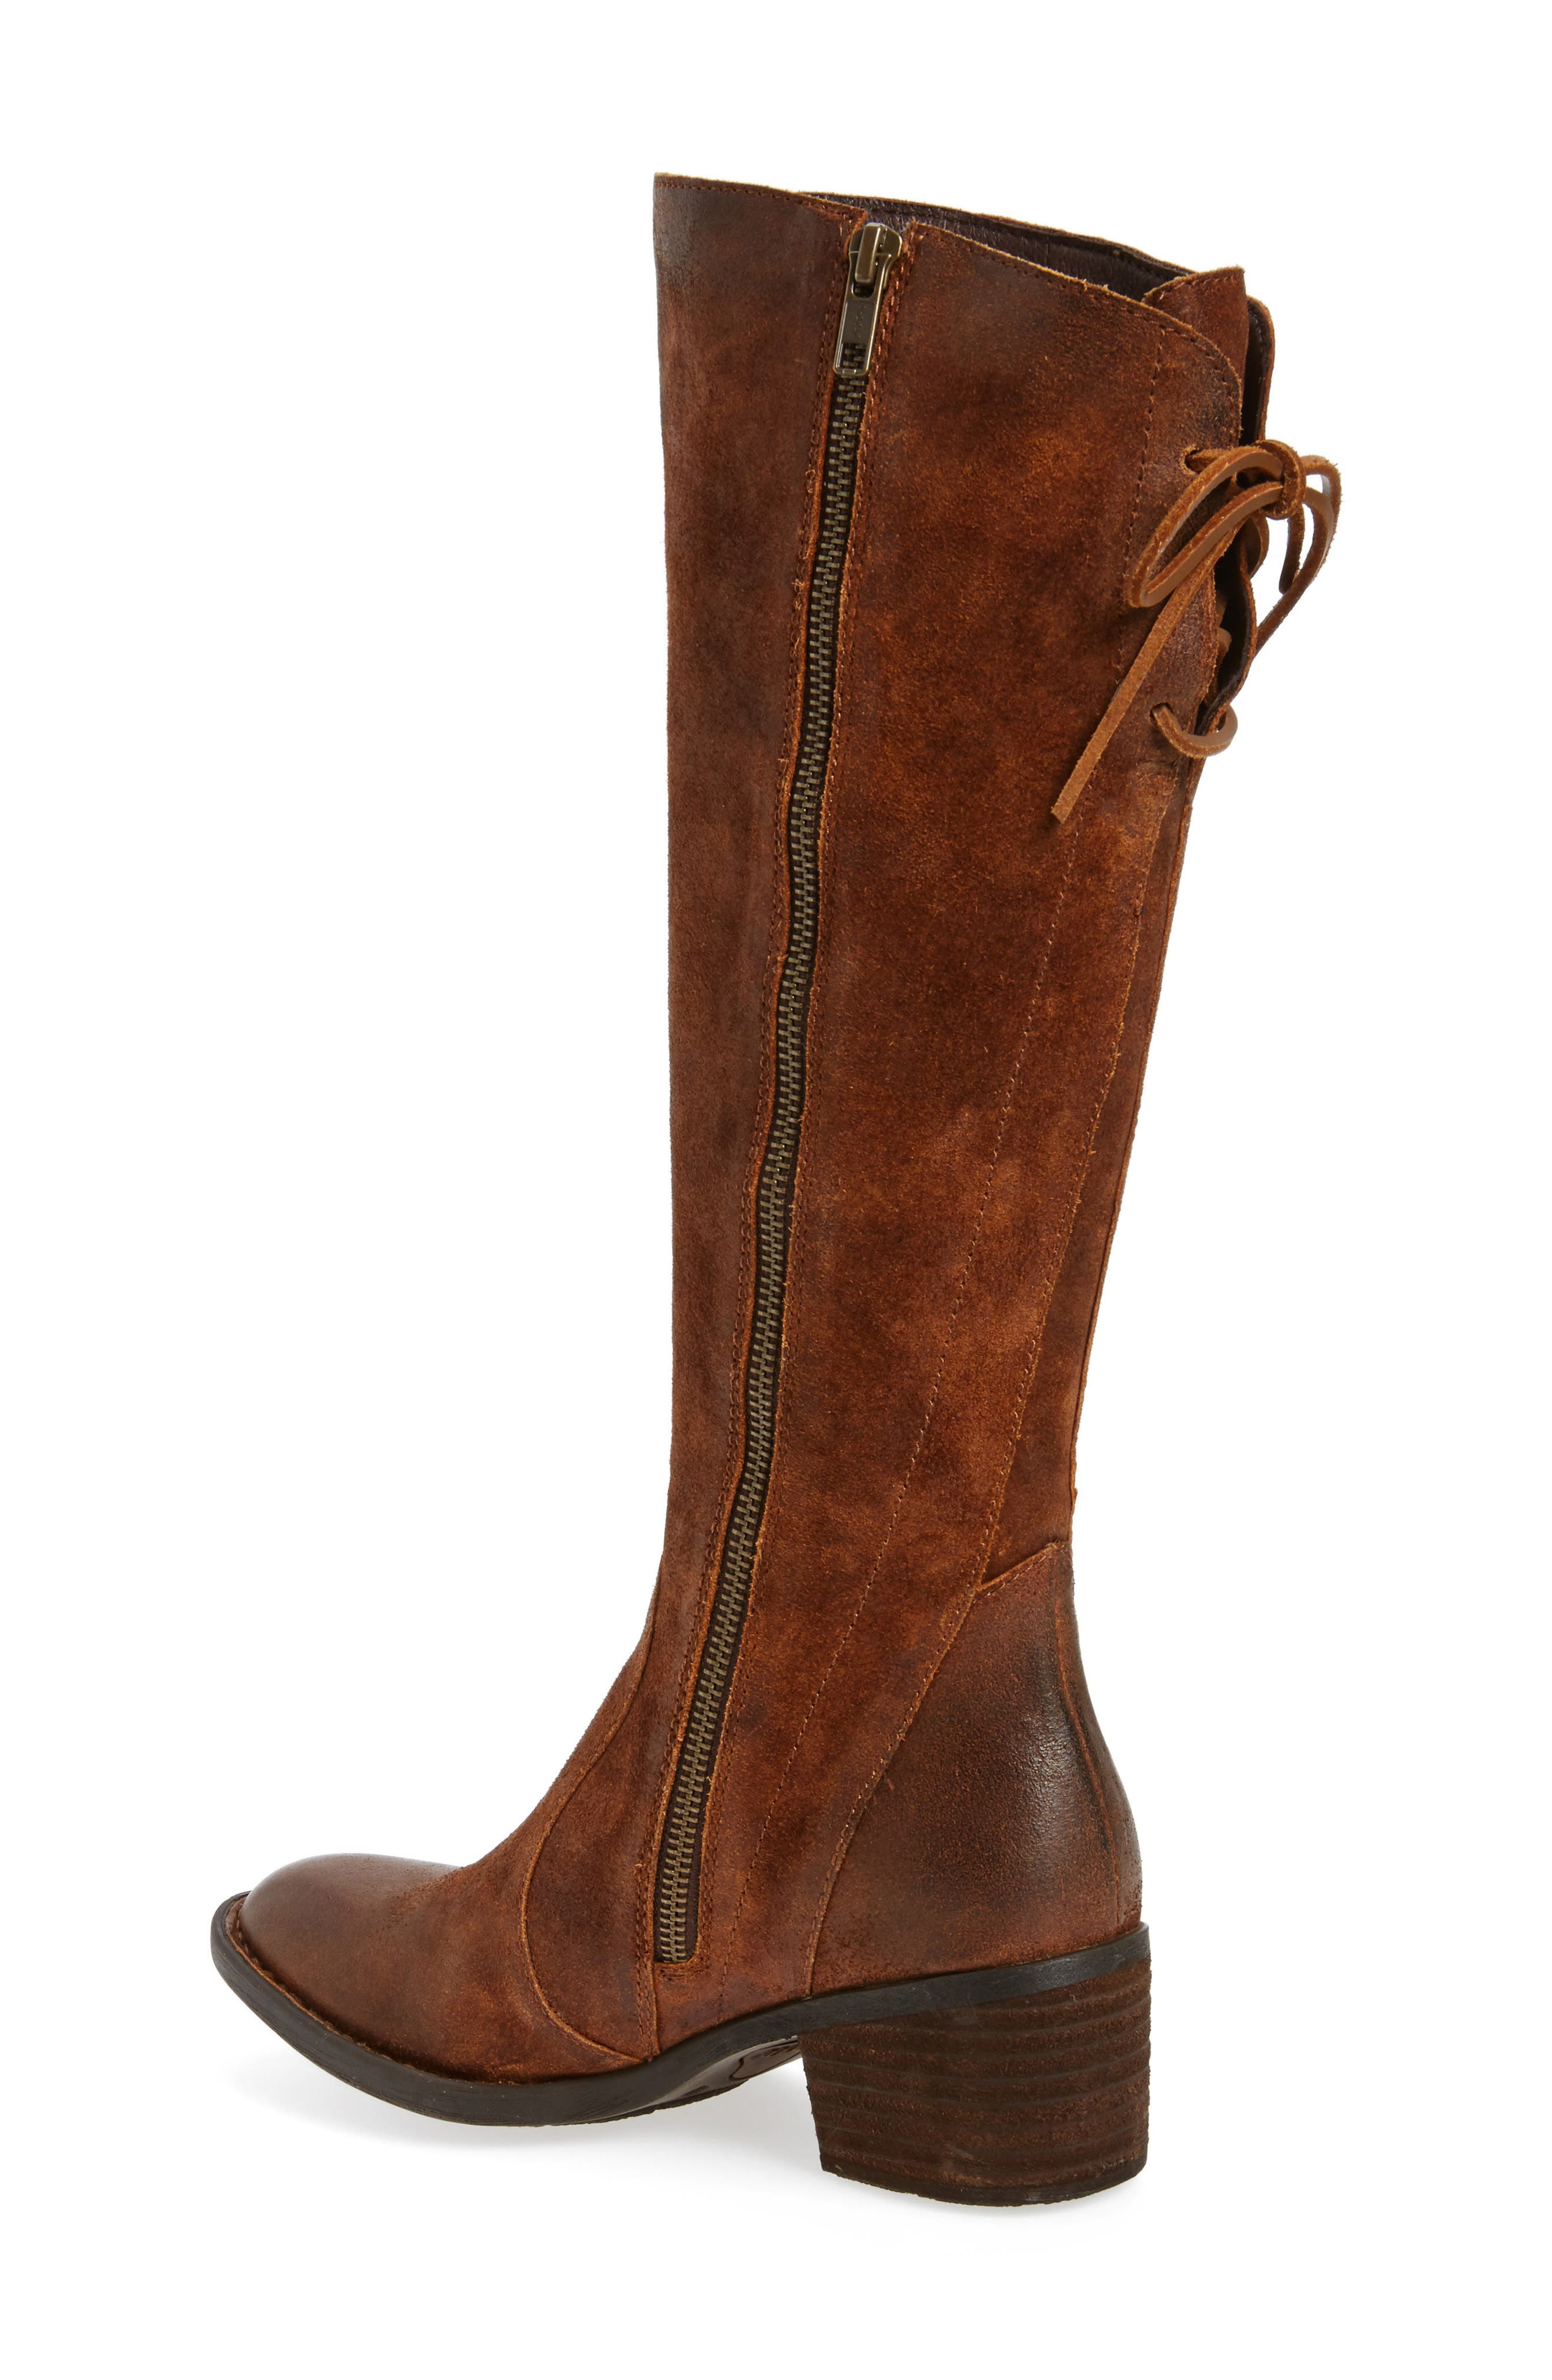 Felicia Knee High Boot,                             Alternate thumbnail 2, color,                             Rust Distressed Leather